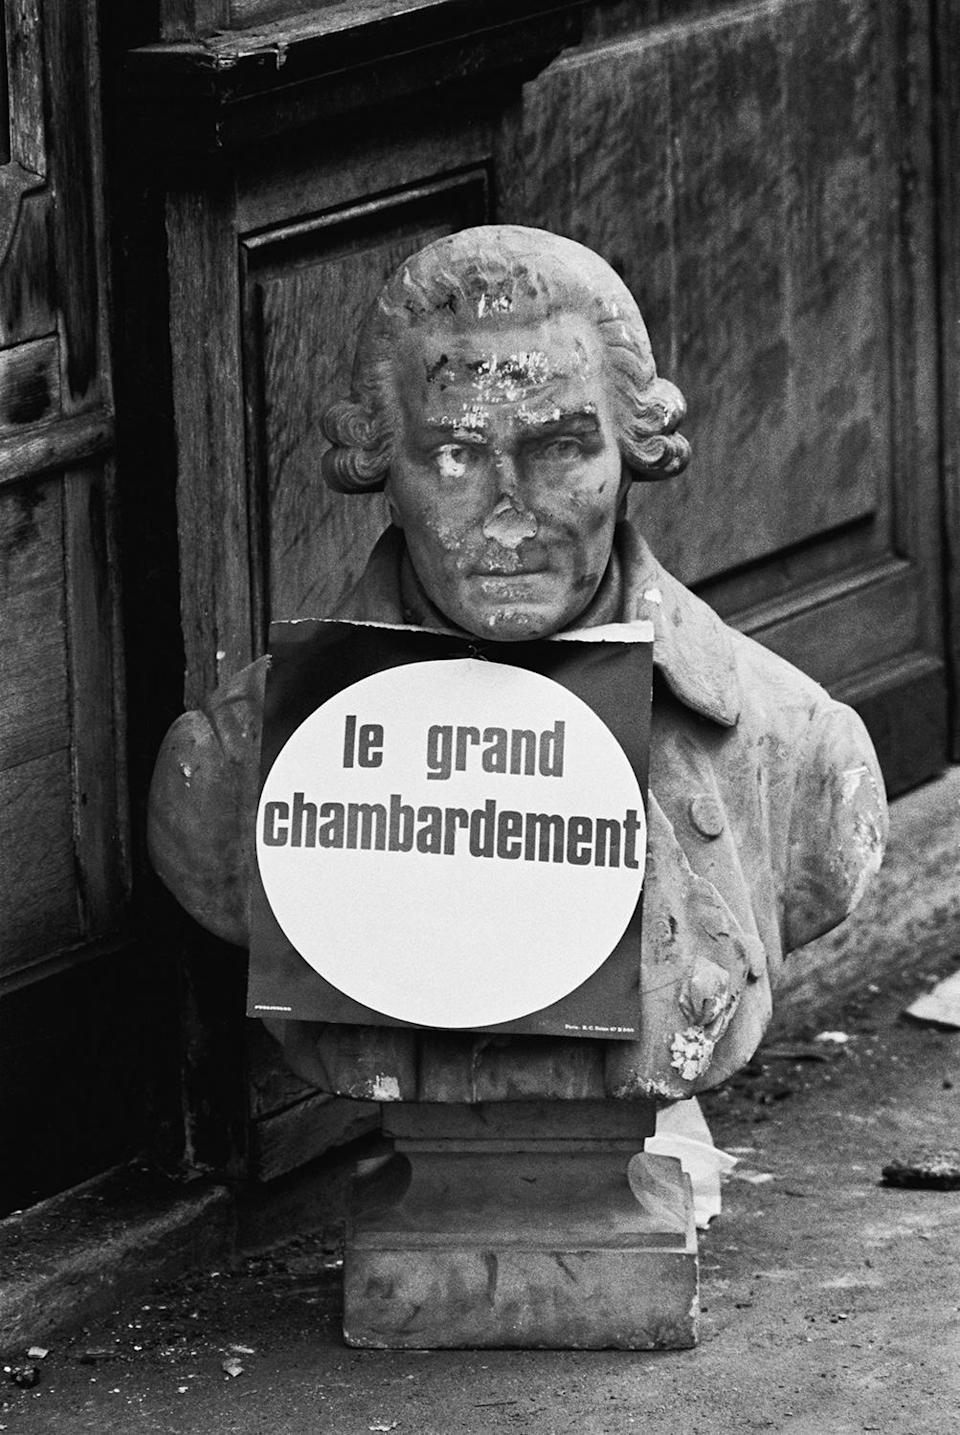 <p>A damaged bust is seen on Rue des Saints Pères after student clashes with police in the Latin Quarter of Paris on May 11, 1968. (Photo: Gökşin Sipahioğlu/SIPA) </p>